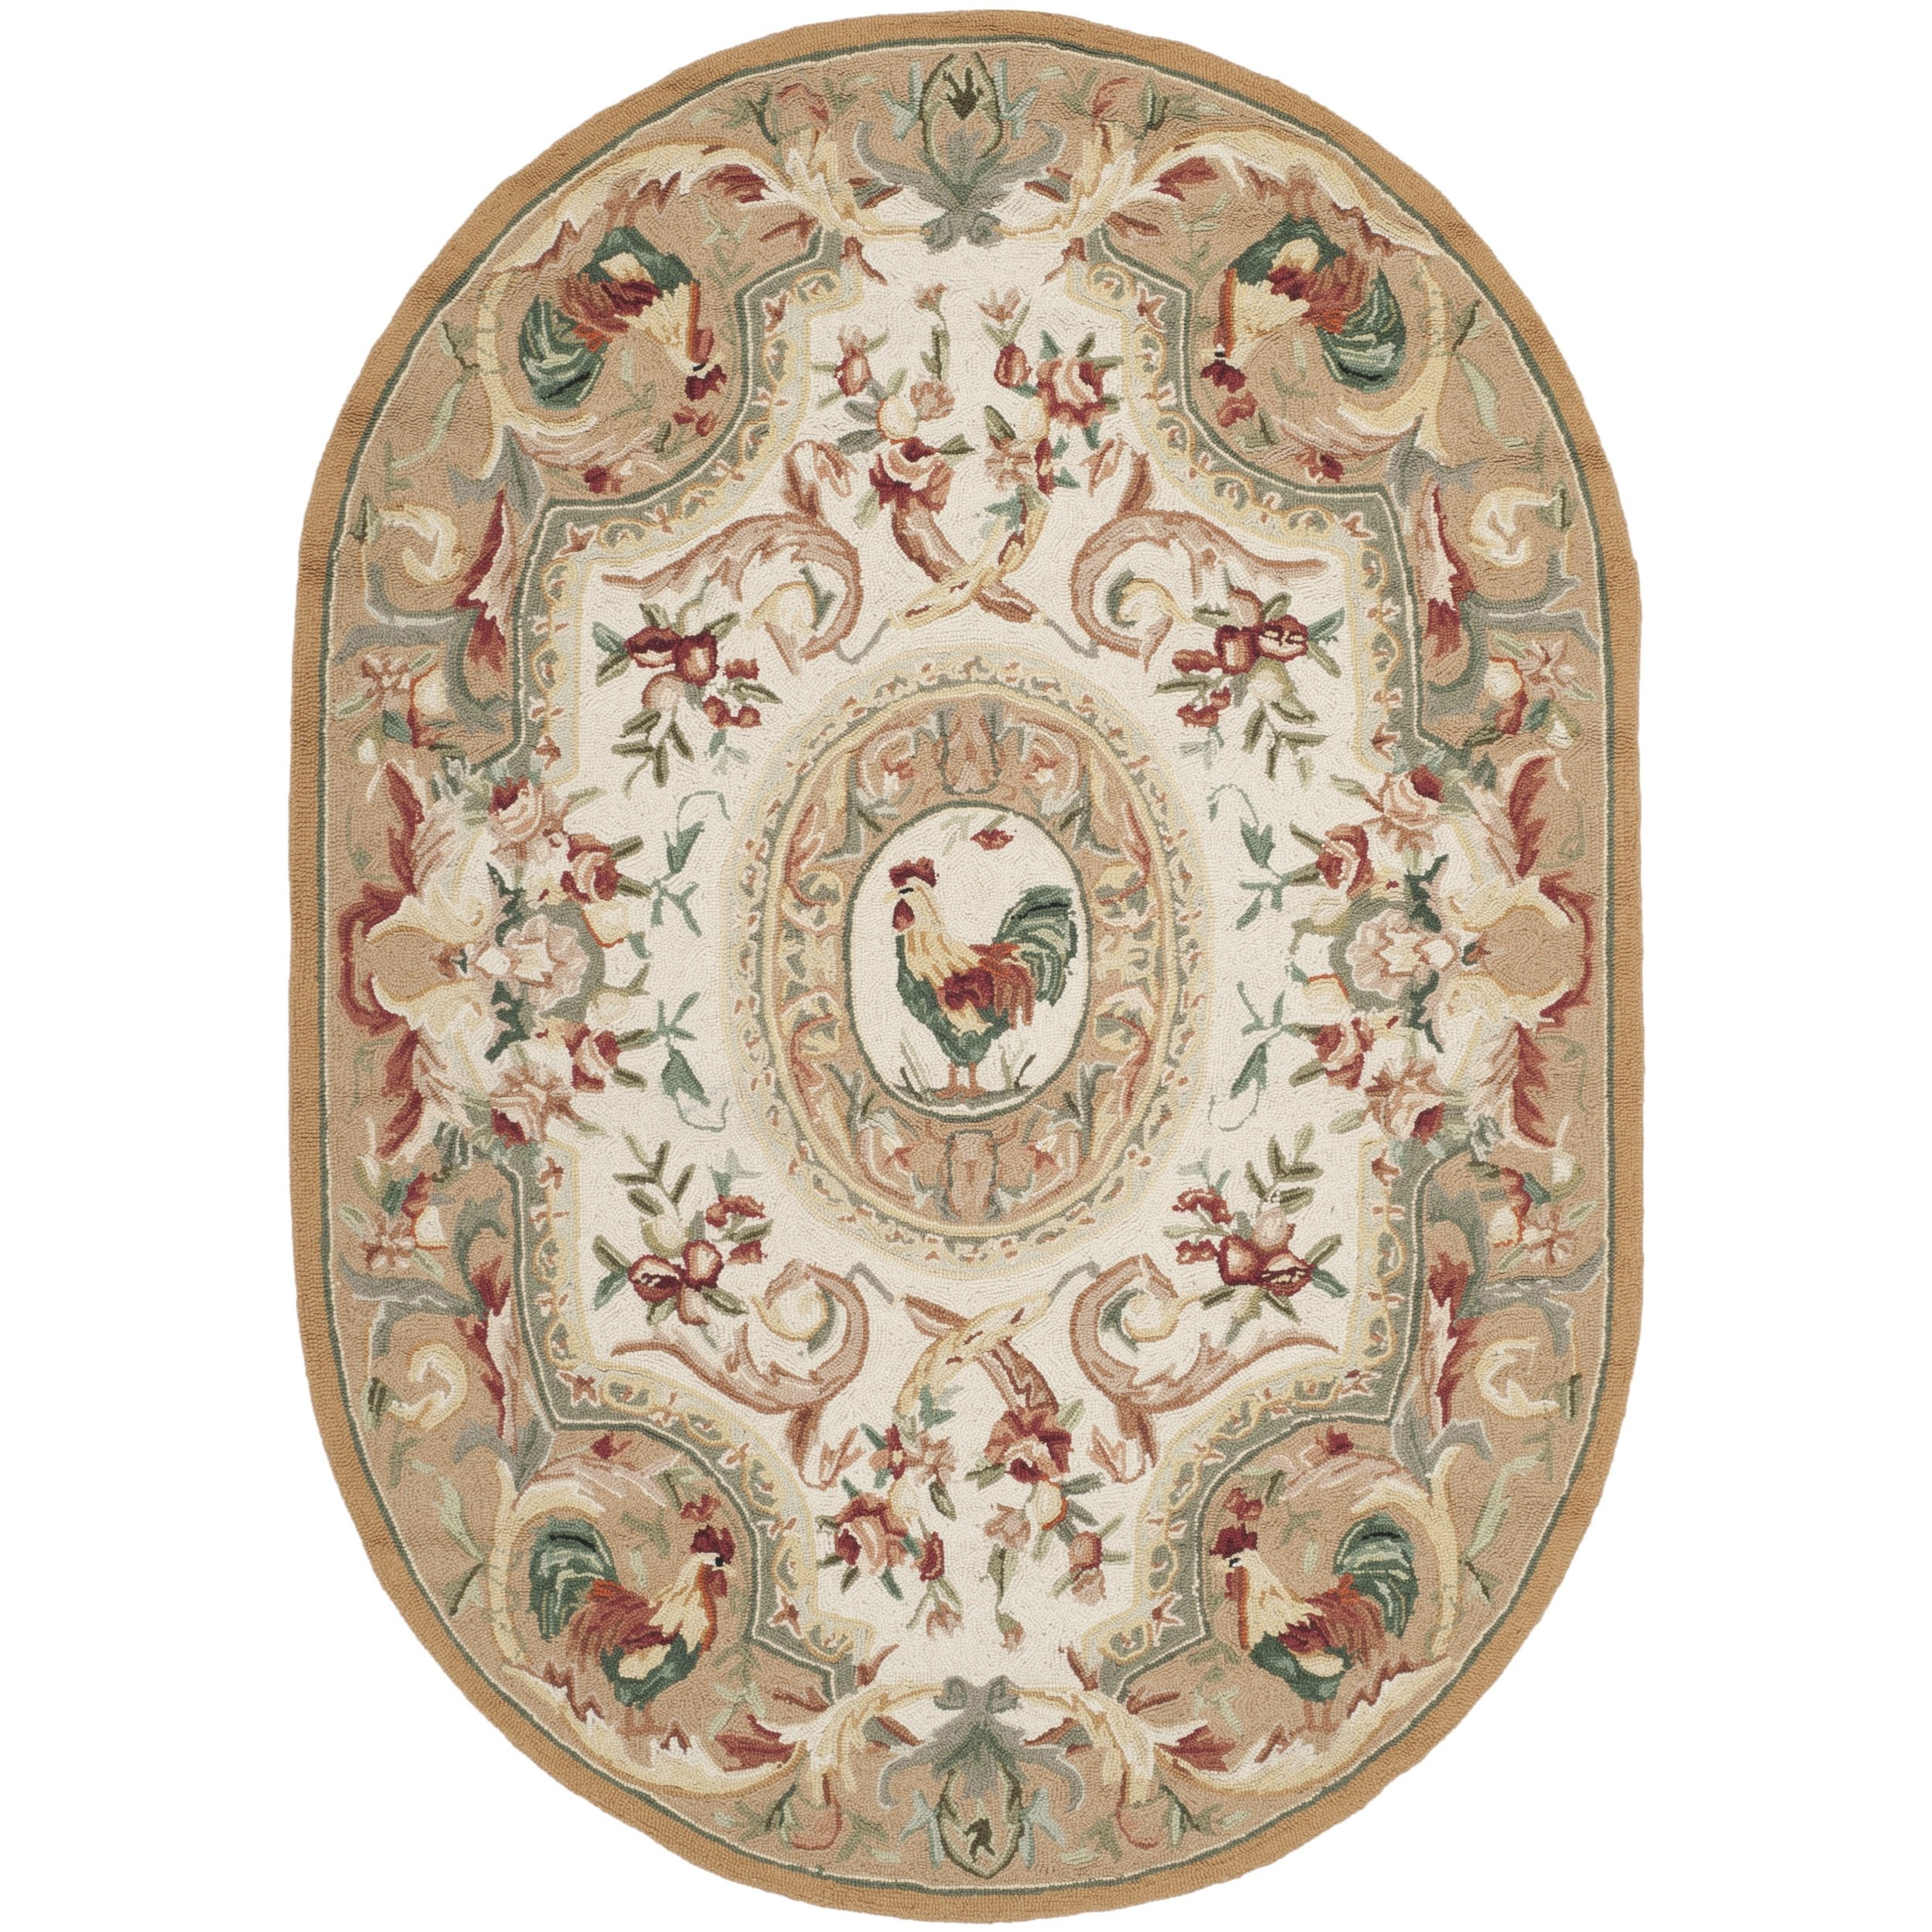 Safavieh Chelsea Collection HK48T Hand-Hooked Taupe Premium Wool Oval Area Rug (4'6'' x 6'6'' Oval)